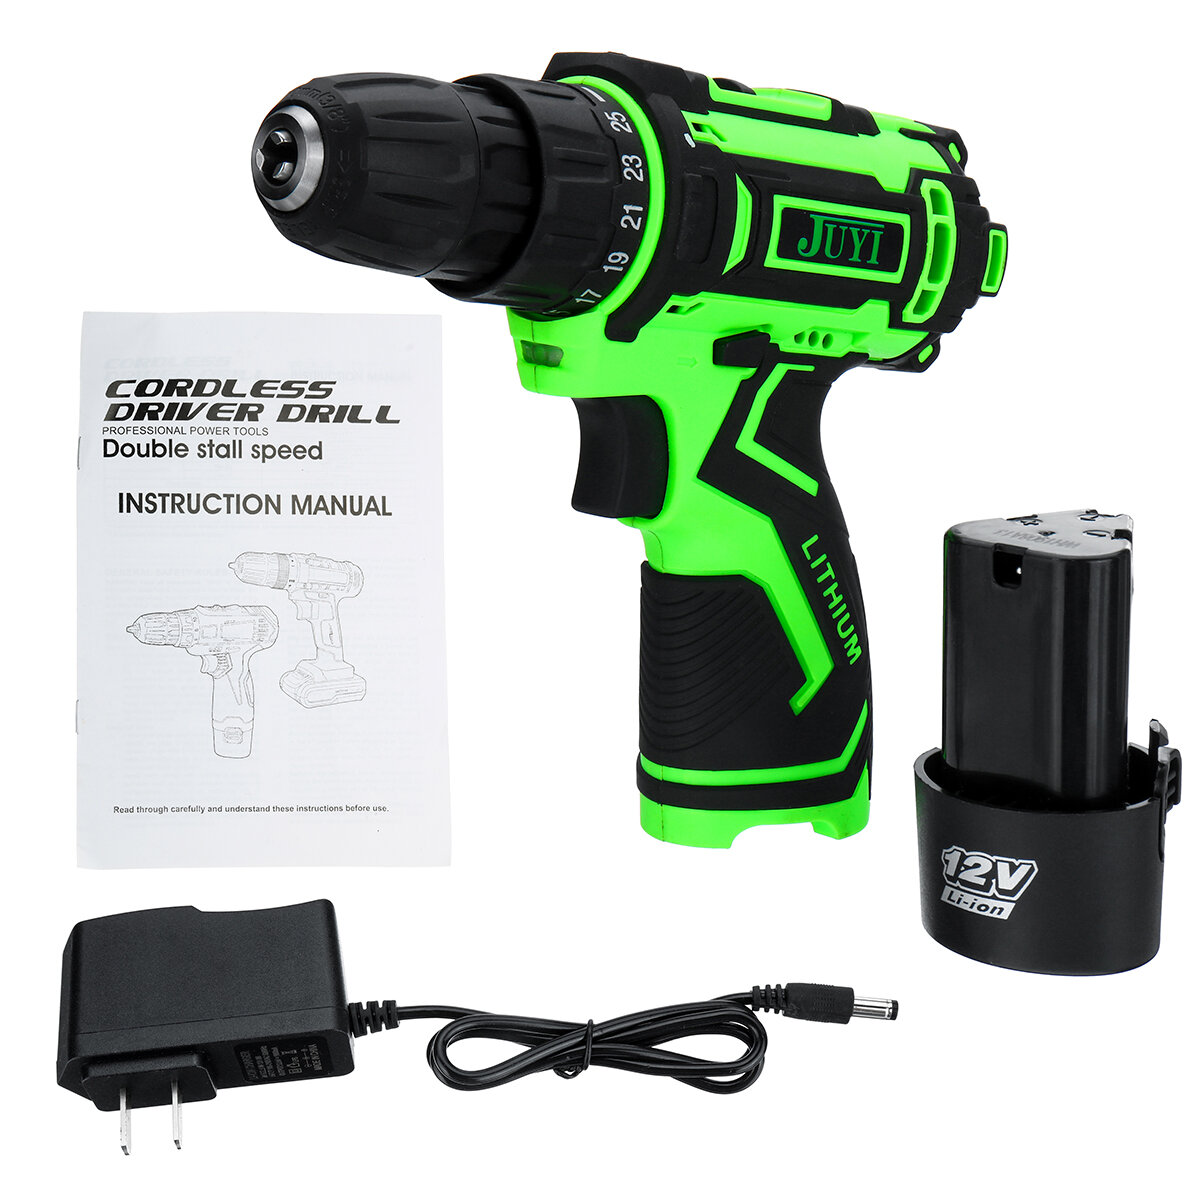 42VF Li-Ion Battery Cordless Rechargeable Electric Impact Drill Driver Screwdriver LED Light - 3